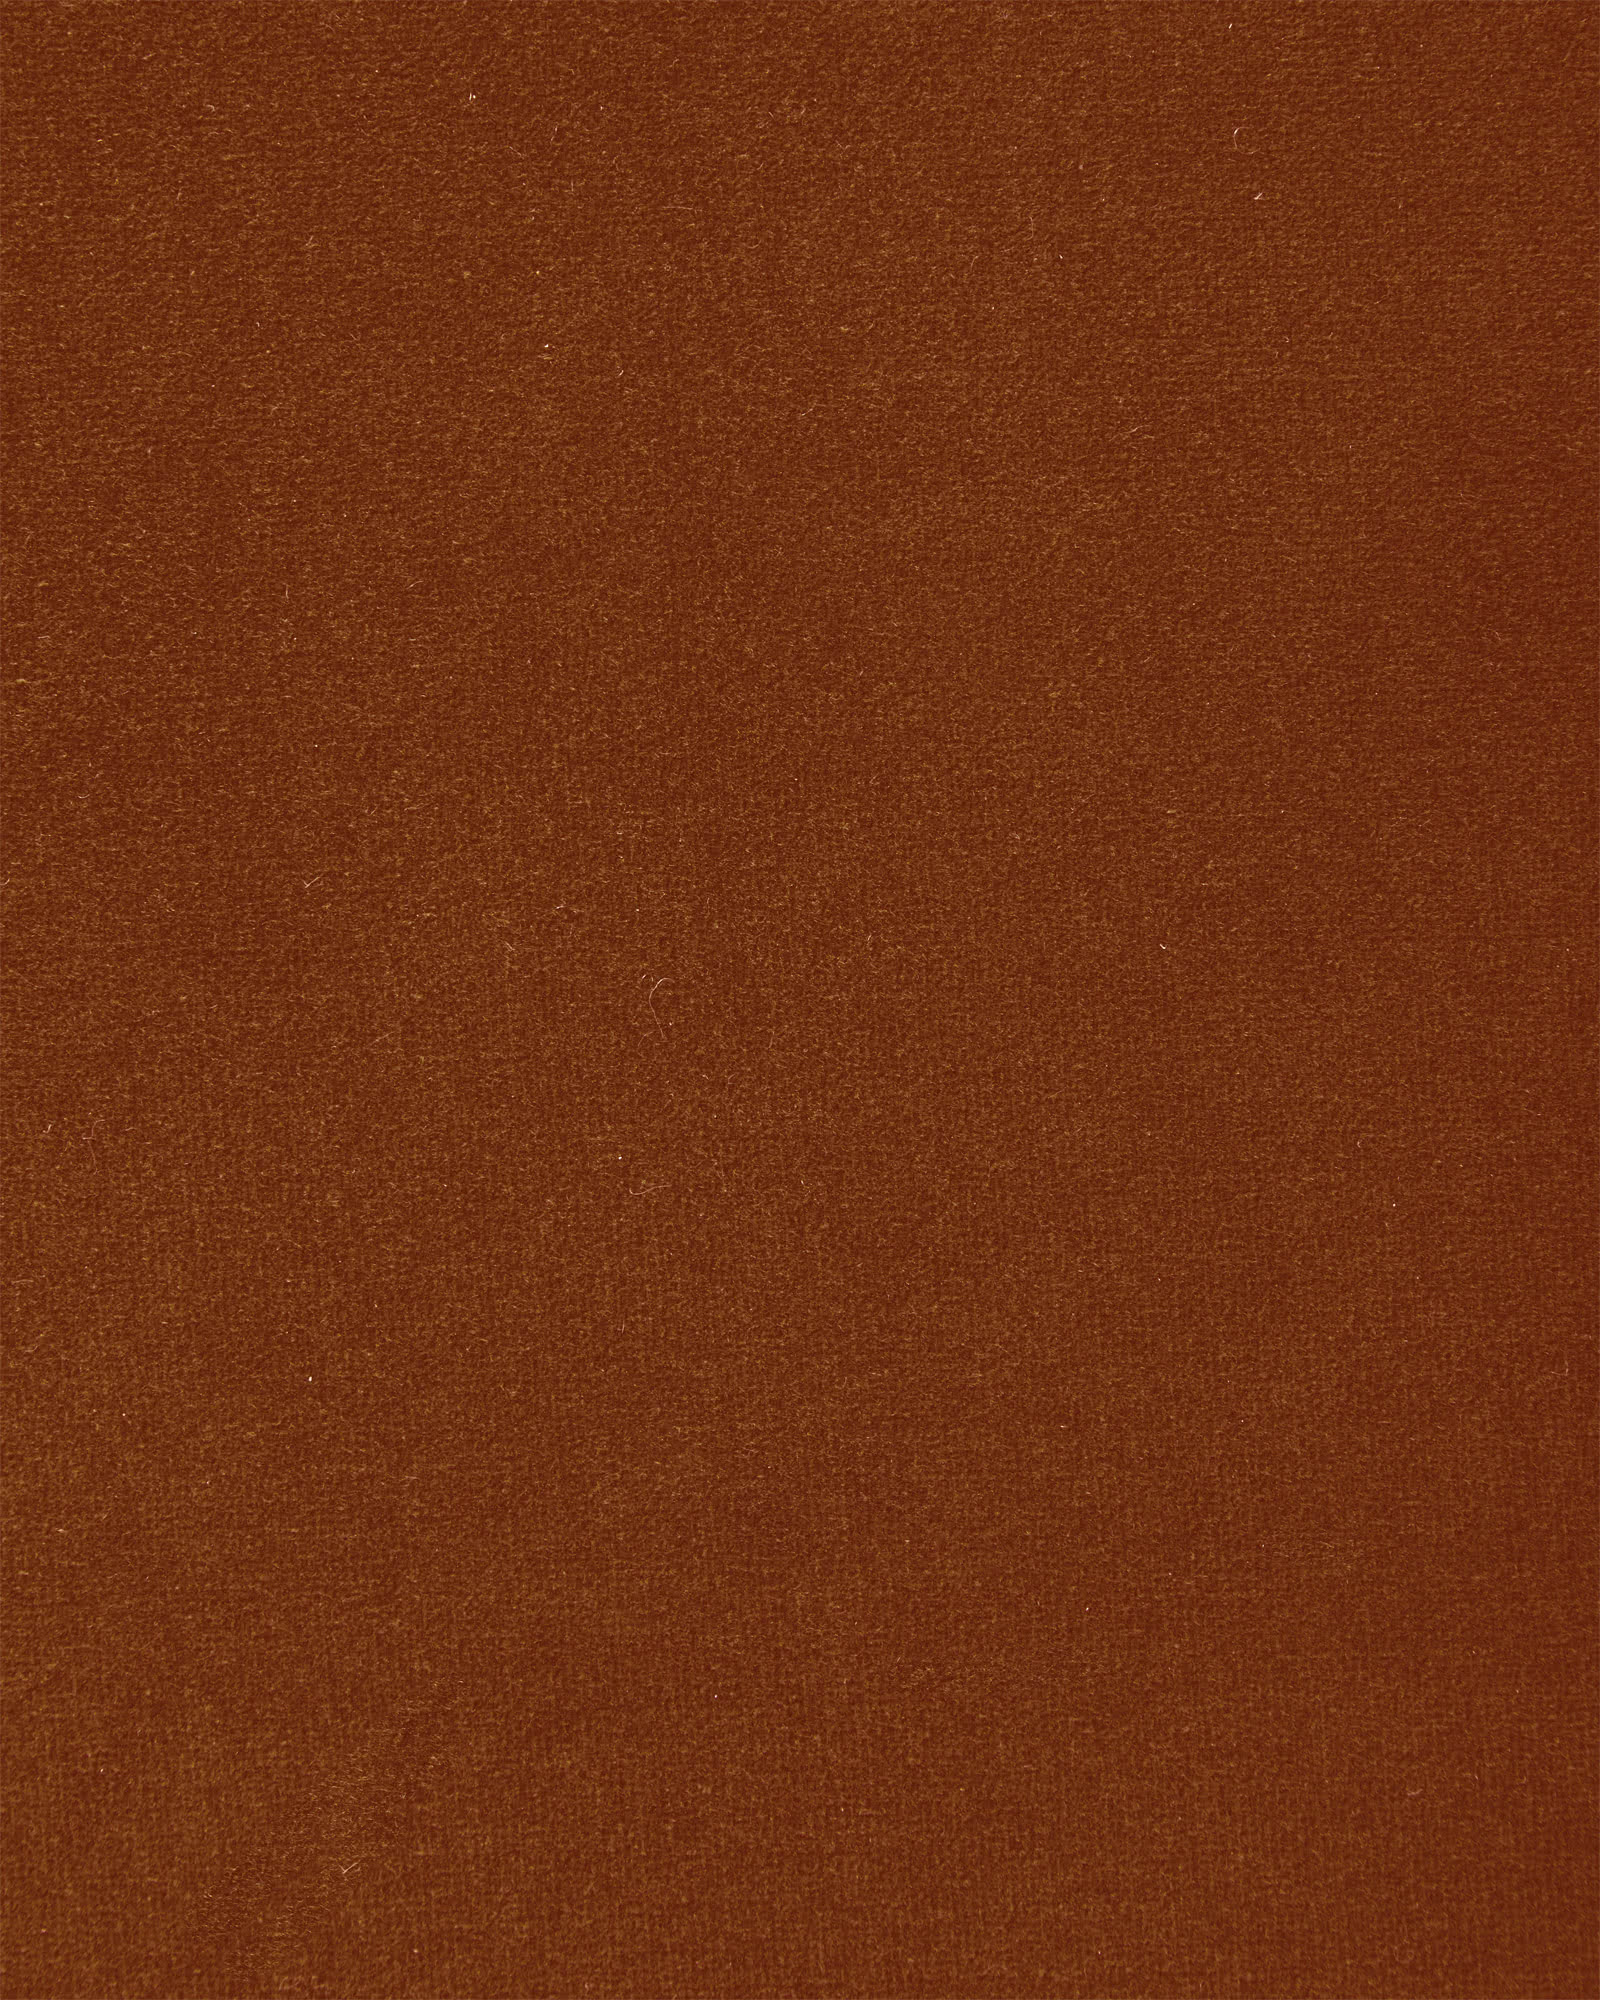 Fabric by the Yard – Cotton Velvet Fabric, Terracotta